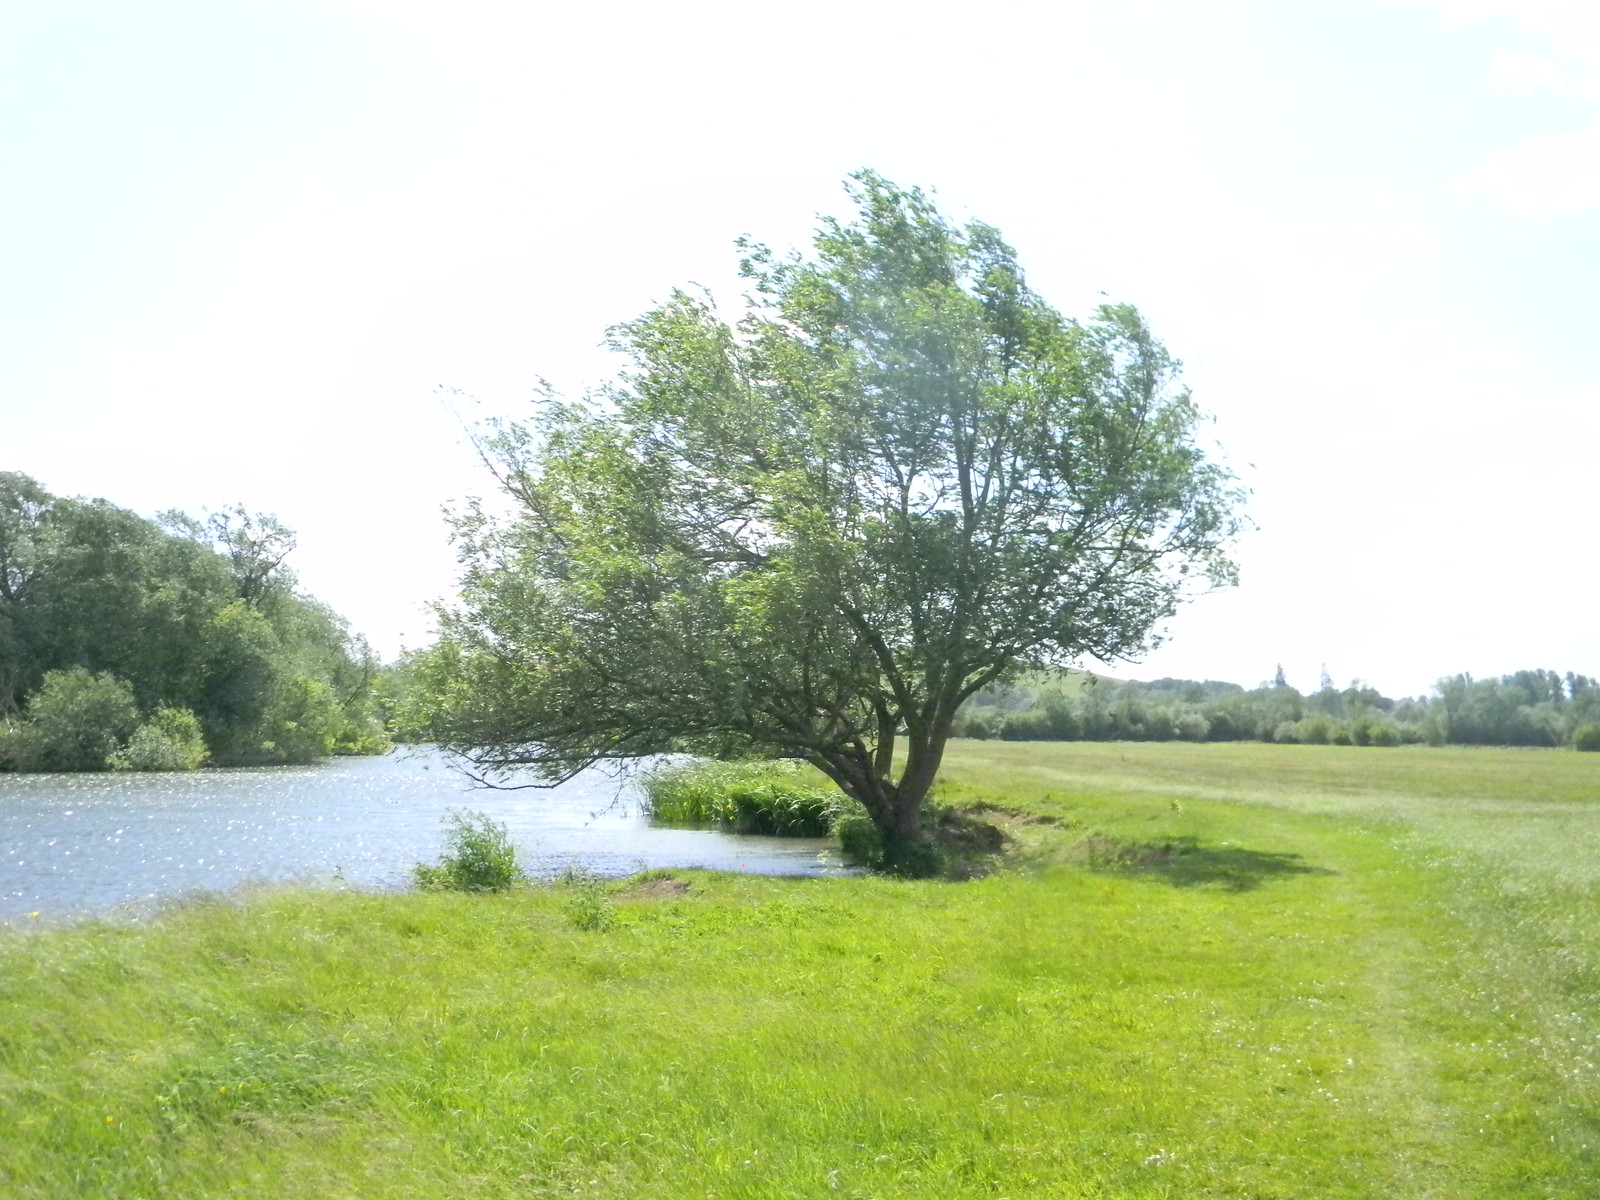 Tree by the Thames Appleford Circular